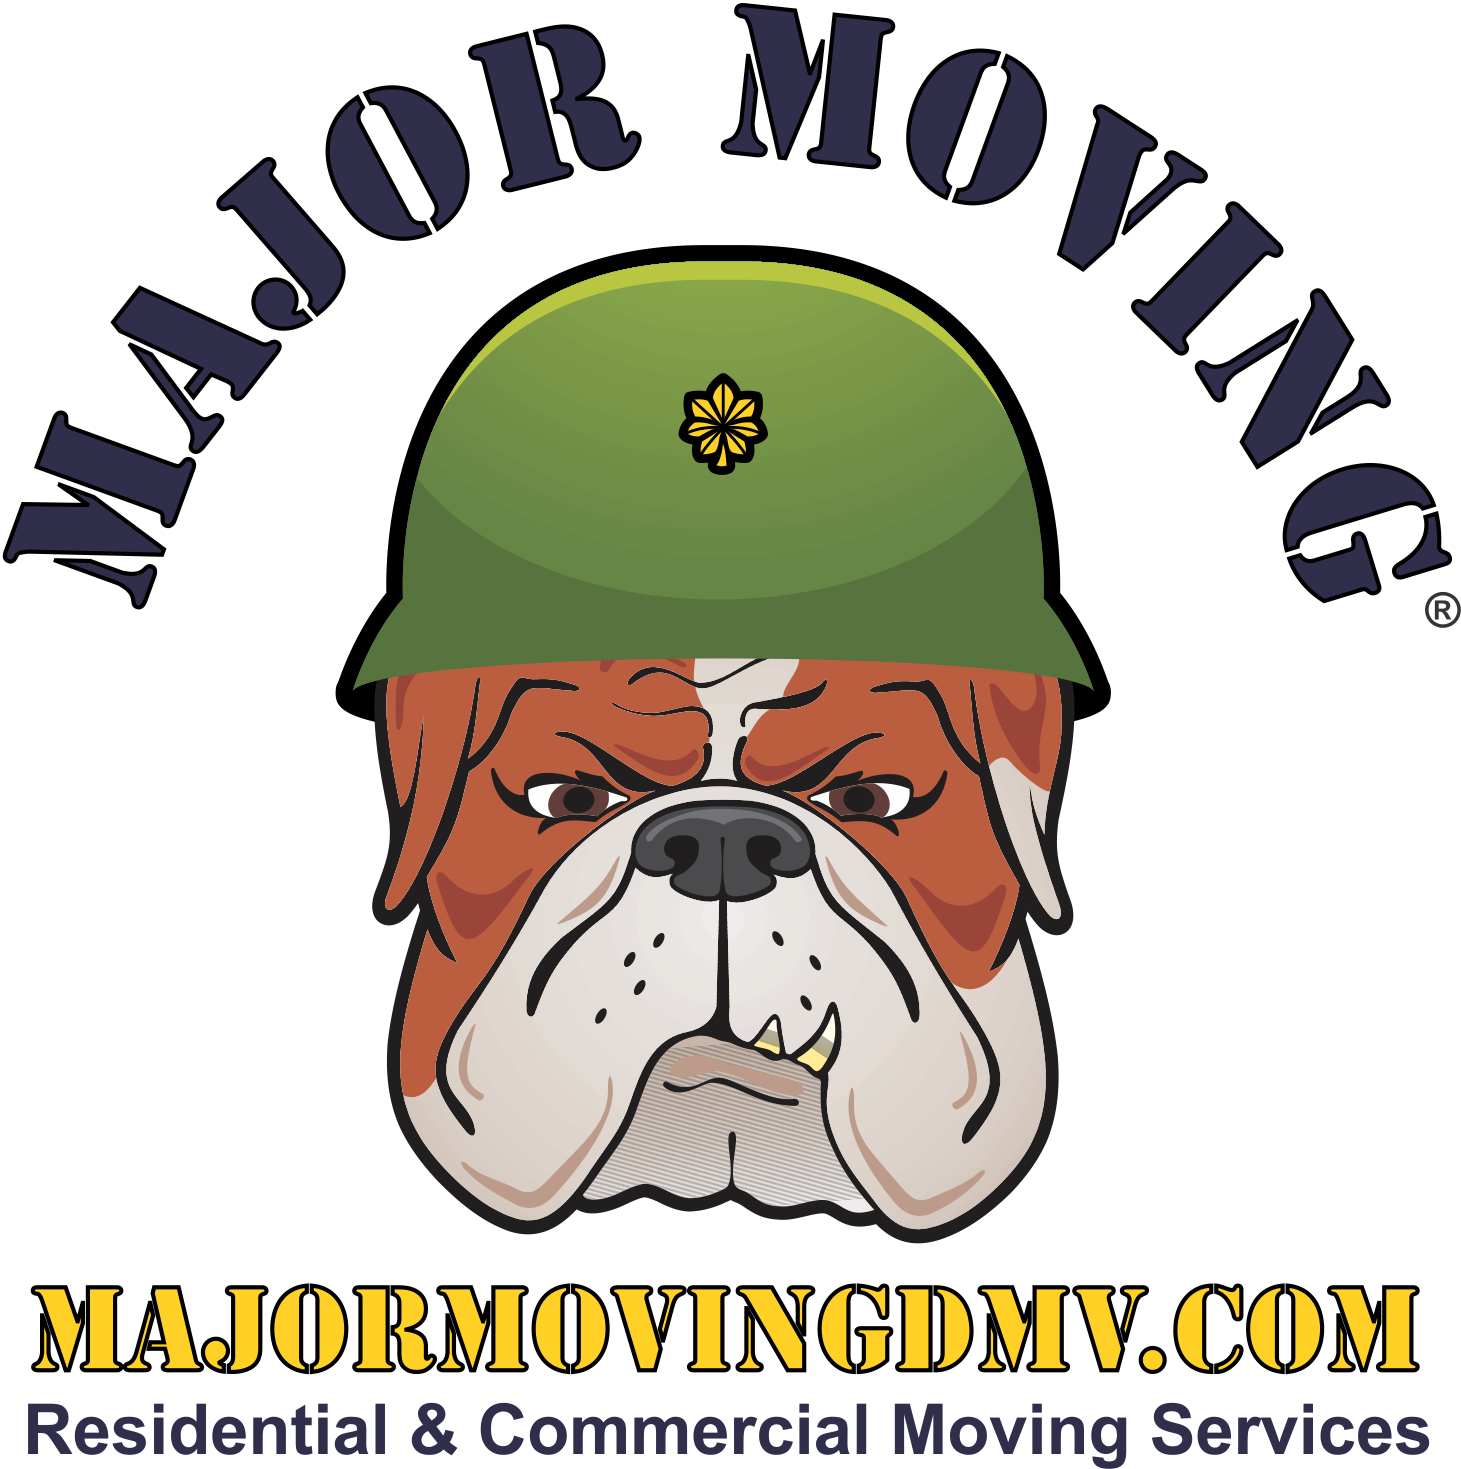 image of Major Moving